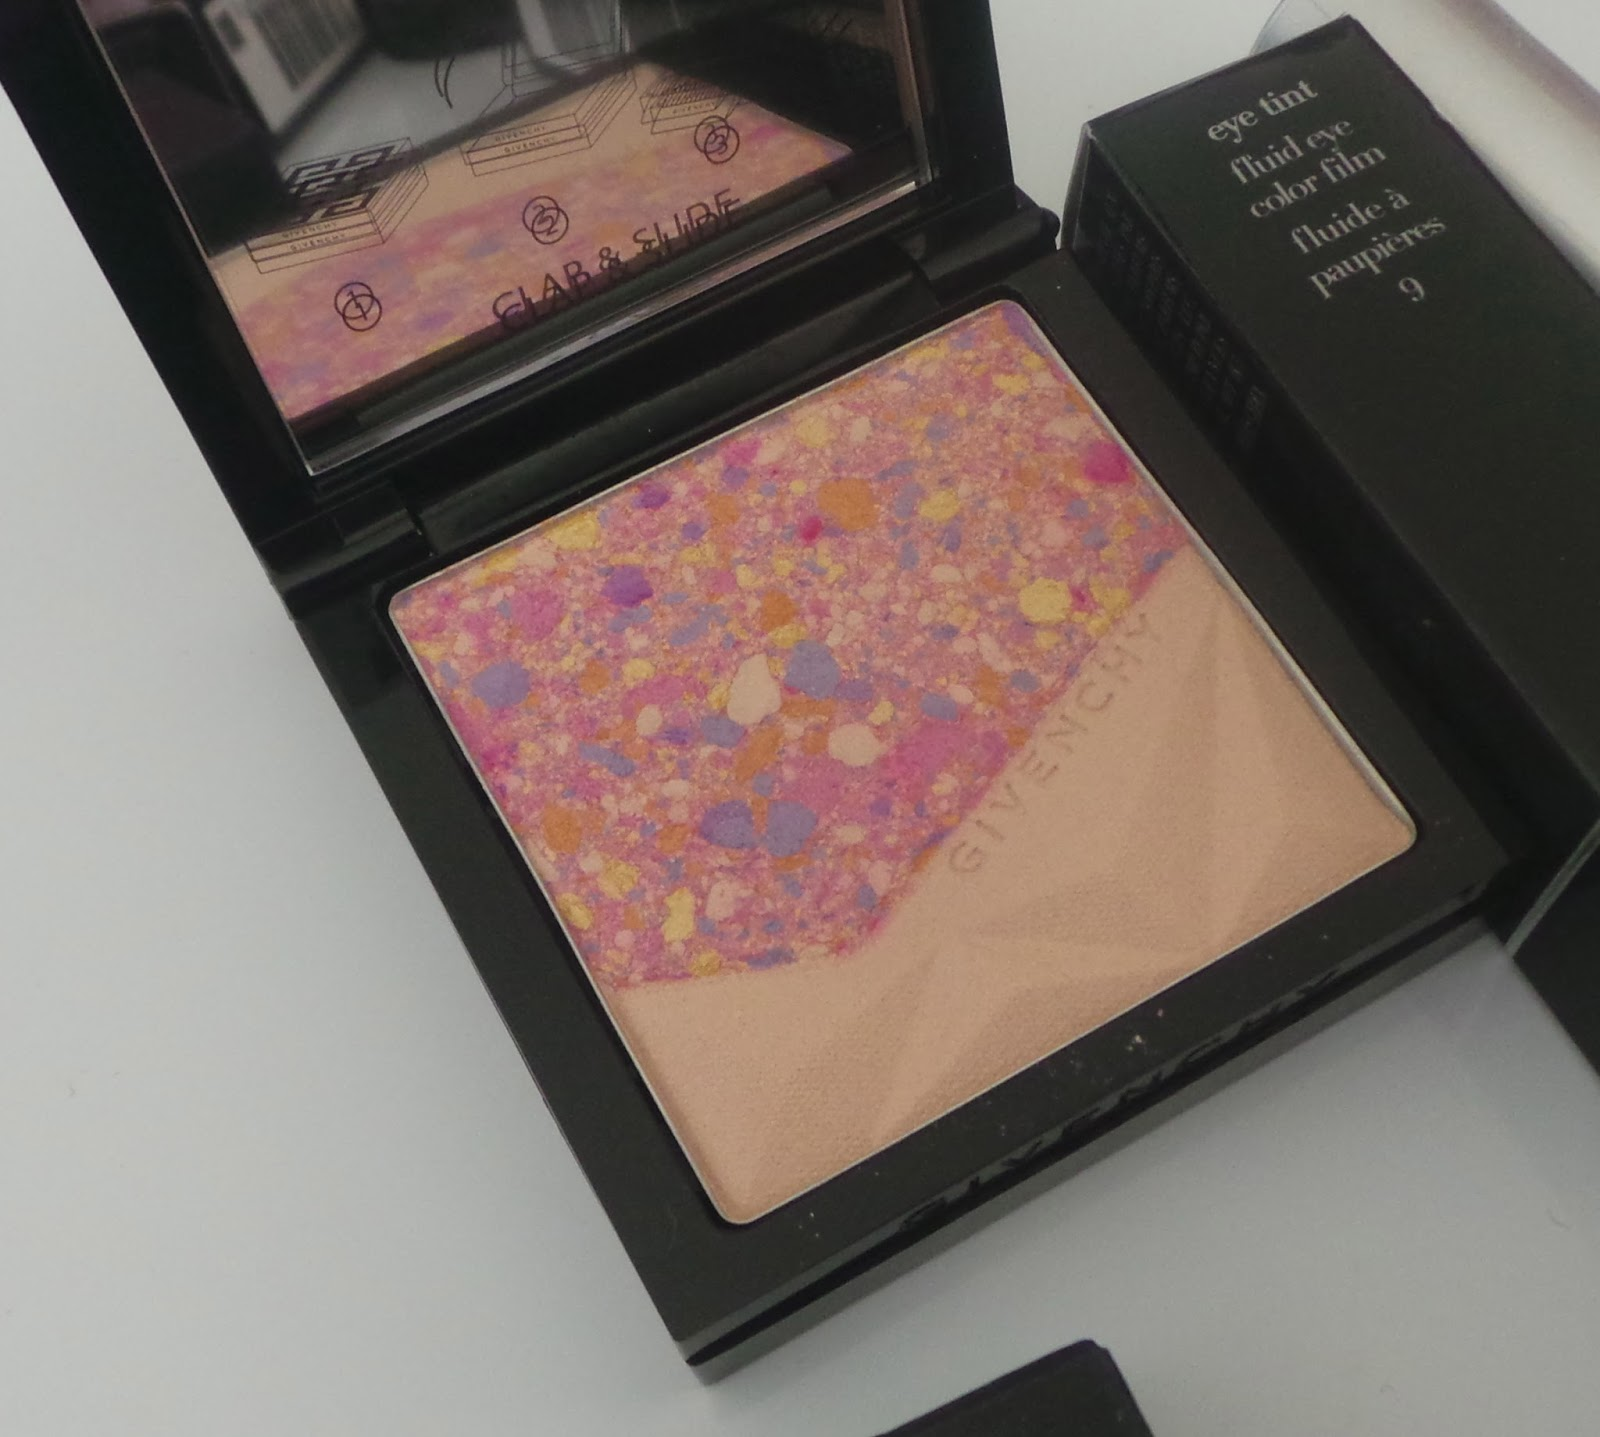 Givenchy Le Prisme Color Confetti face powder